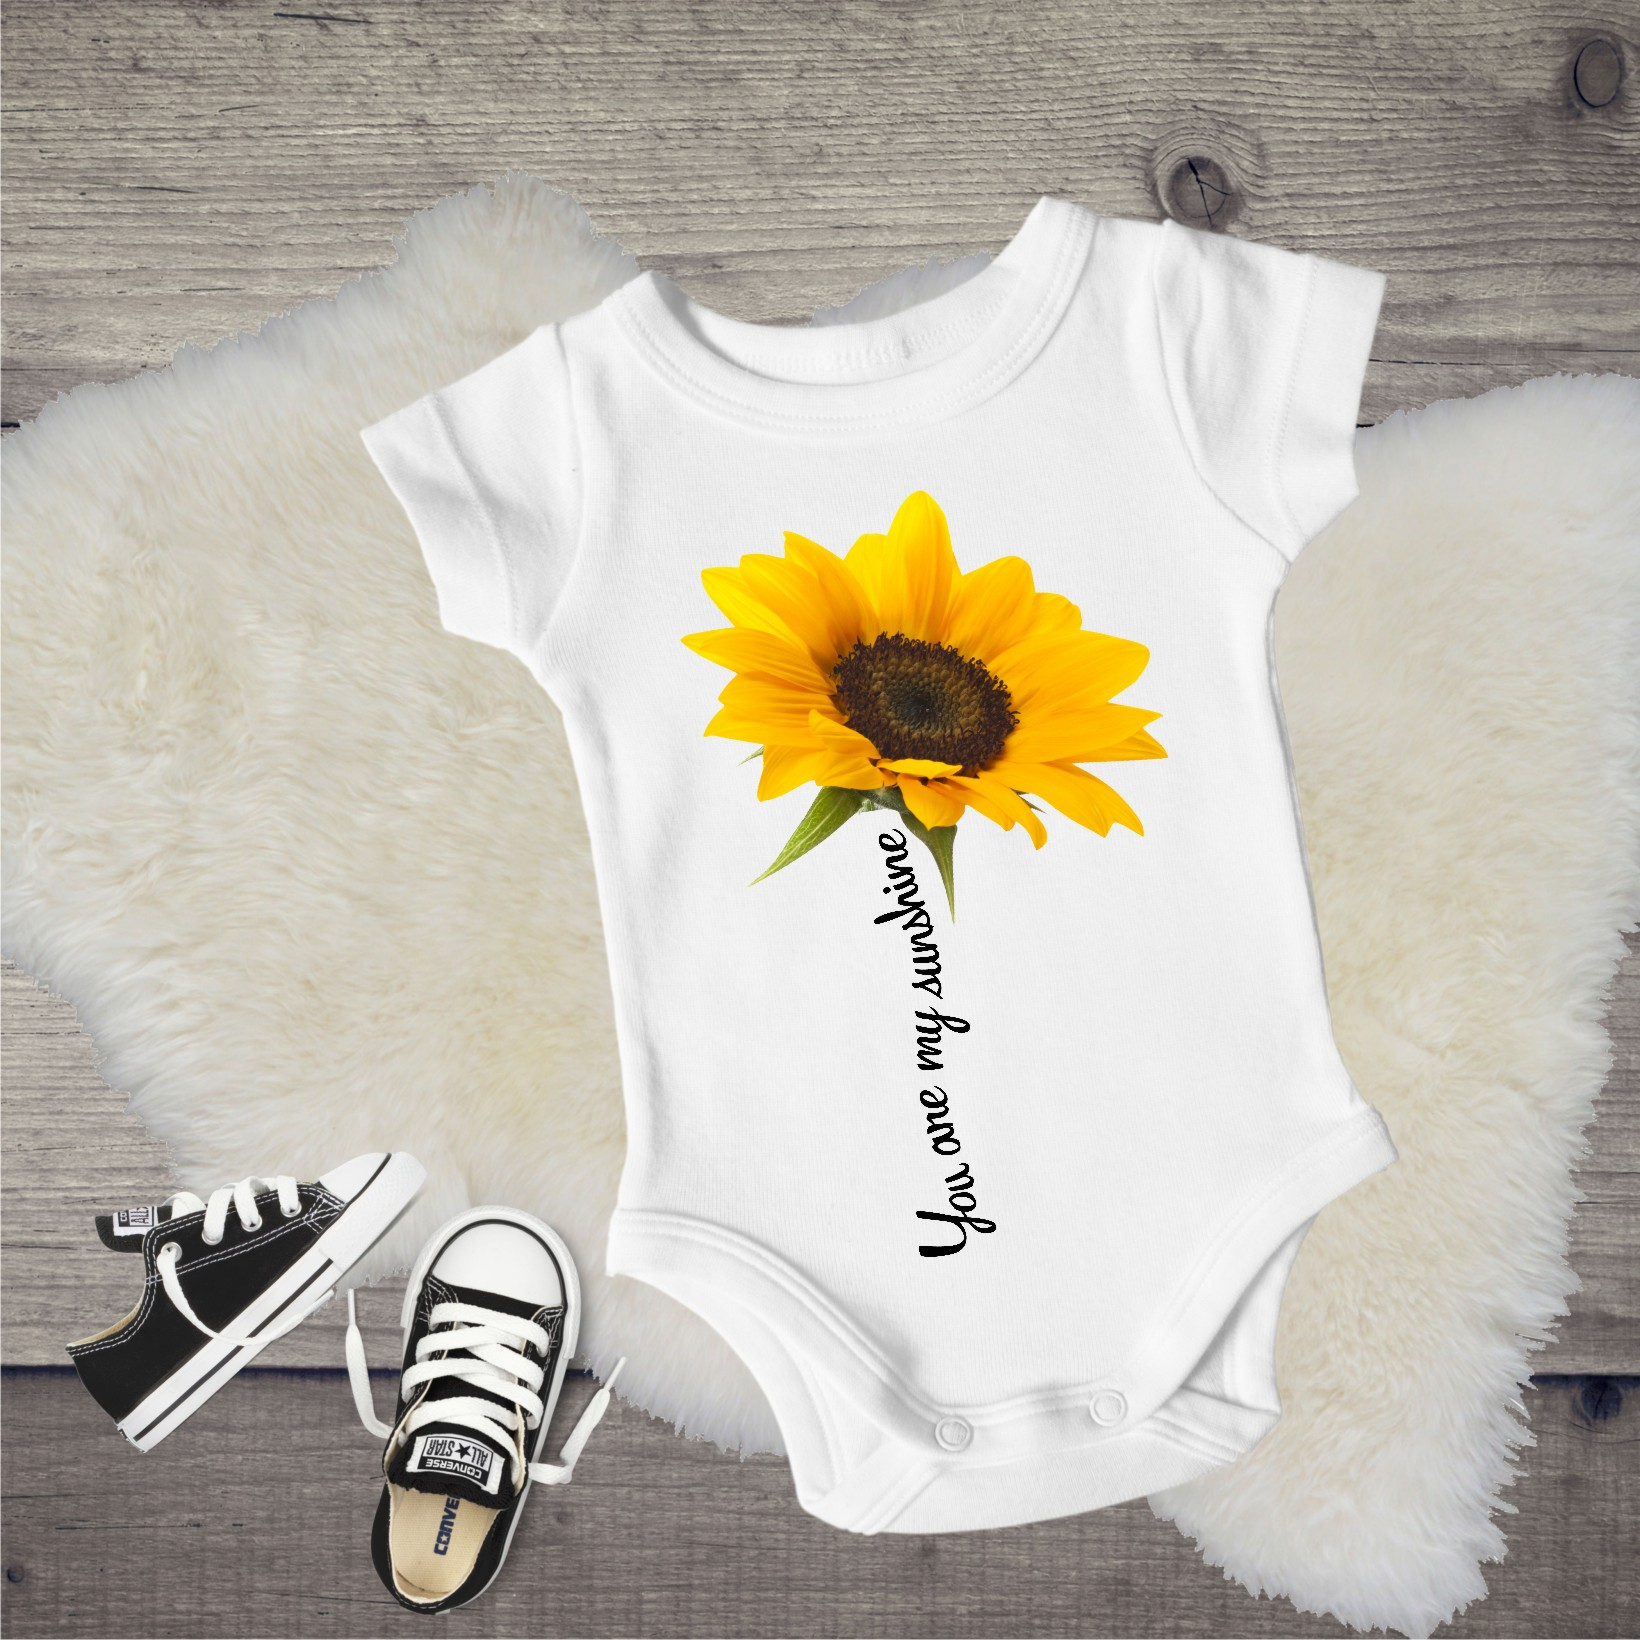 baby onesie - you are my sunshine